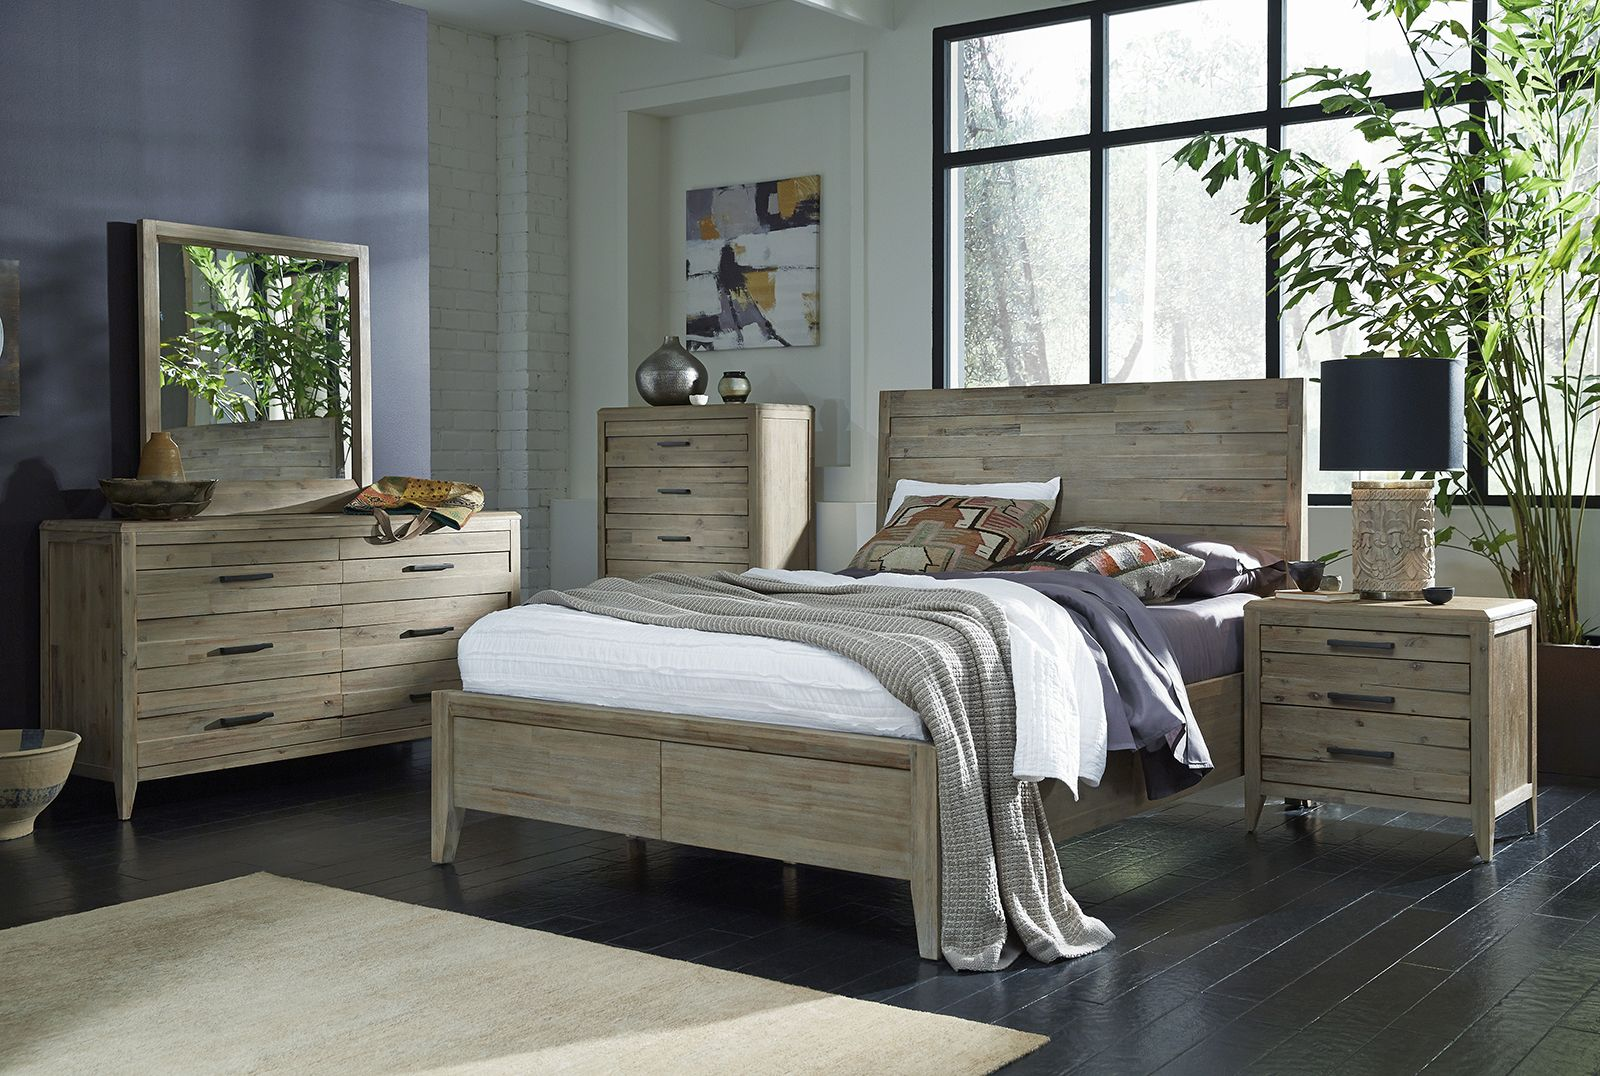 Palliser Casana Furniture Casablanca Harbourside 4 Piece Panel